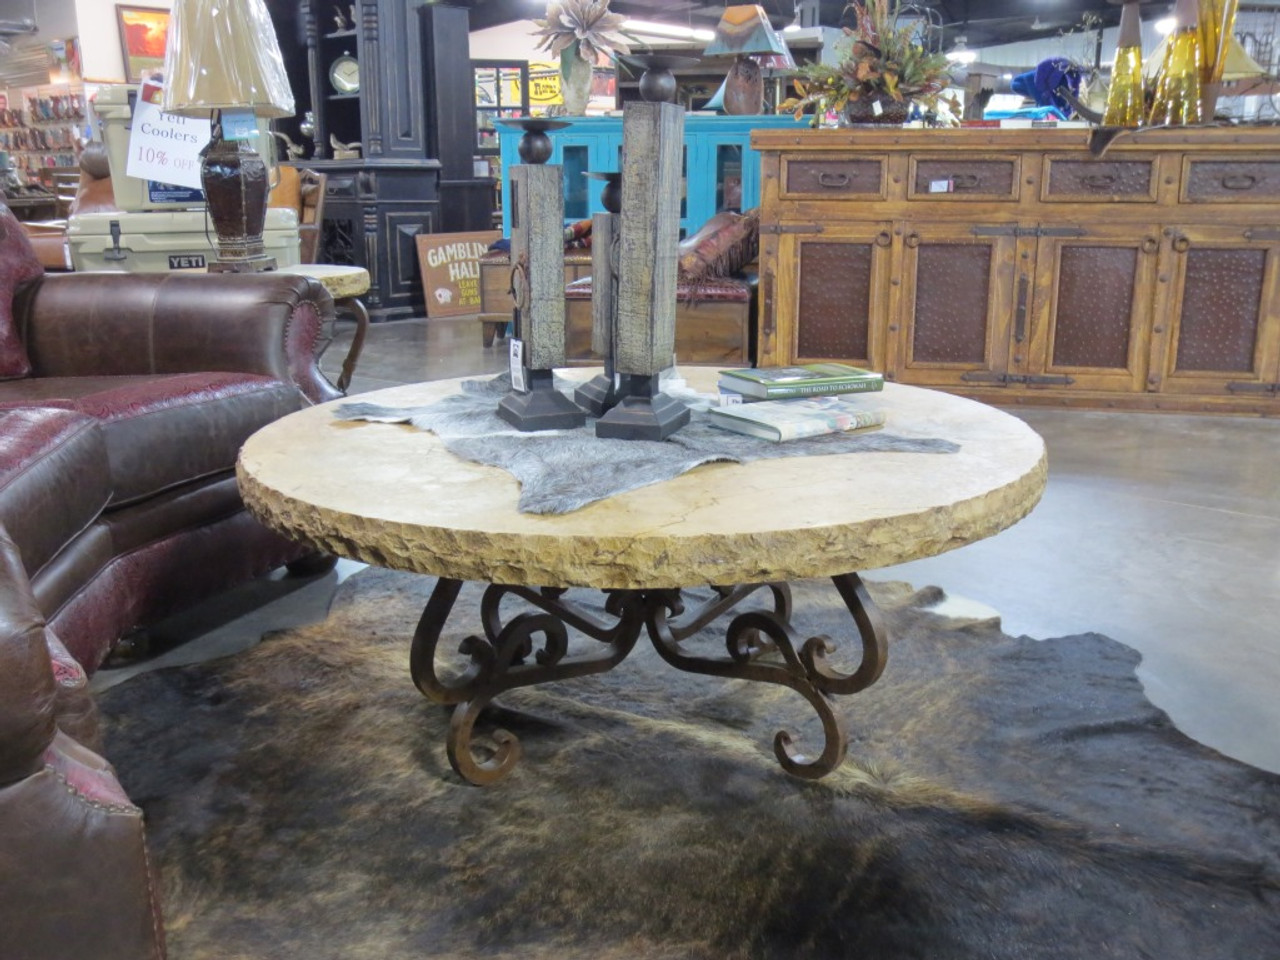 Stupendous Extra Large Marble Coffee Table Dennards Lamtechconsult Wood Chair Design Ideas Lamtechconsultcom